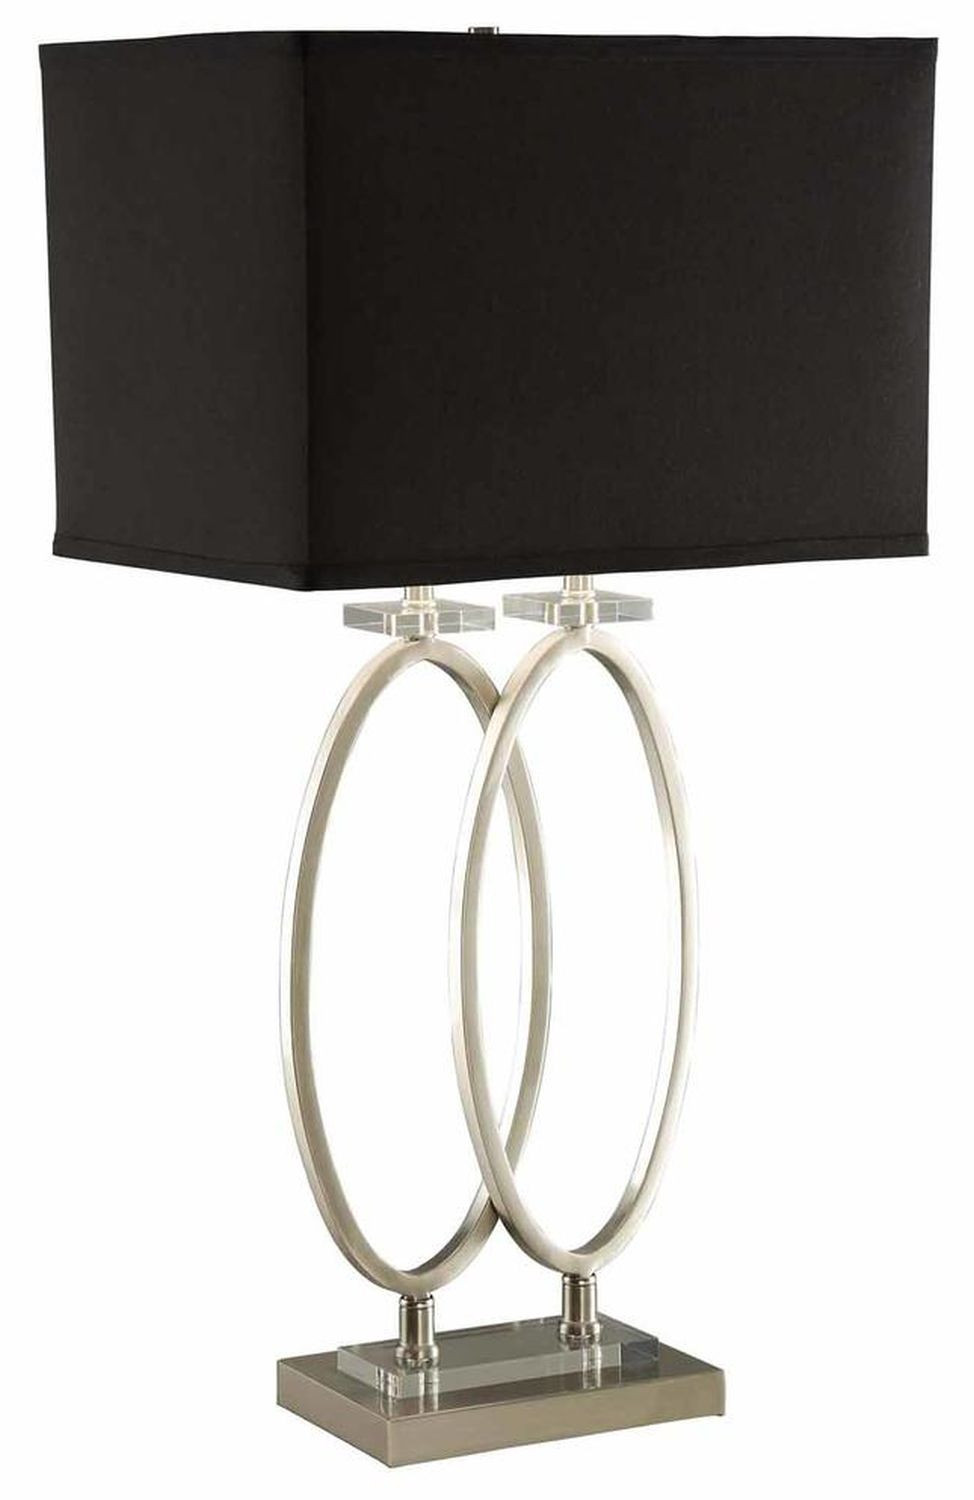 Modern Table Lamp w/ Twin Standing Rings on Rectangle Base